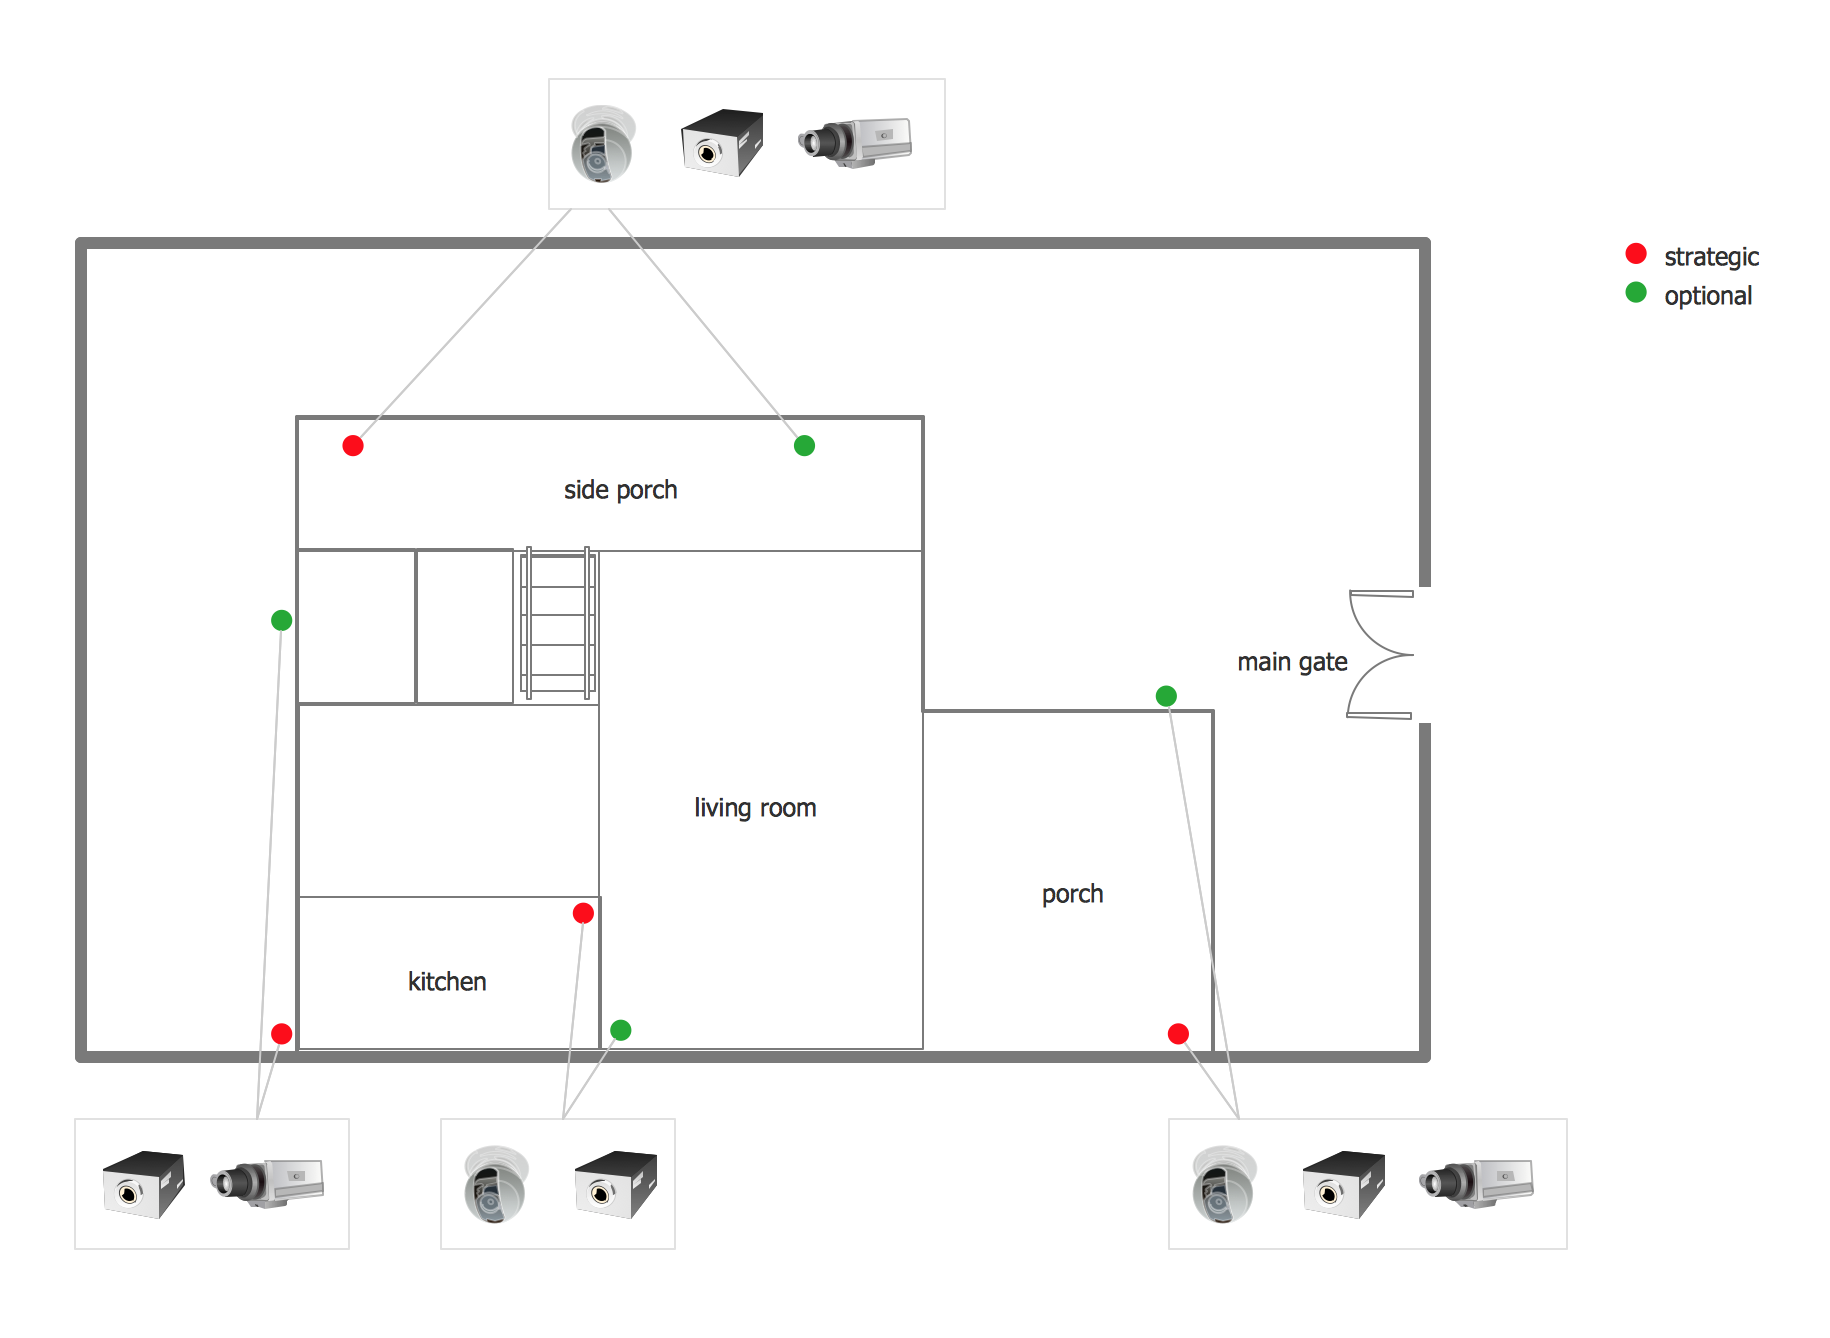 How To Create CCTV Network Diagram